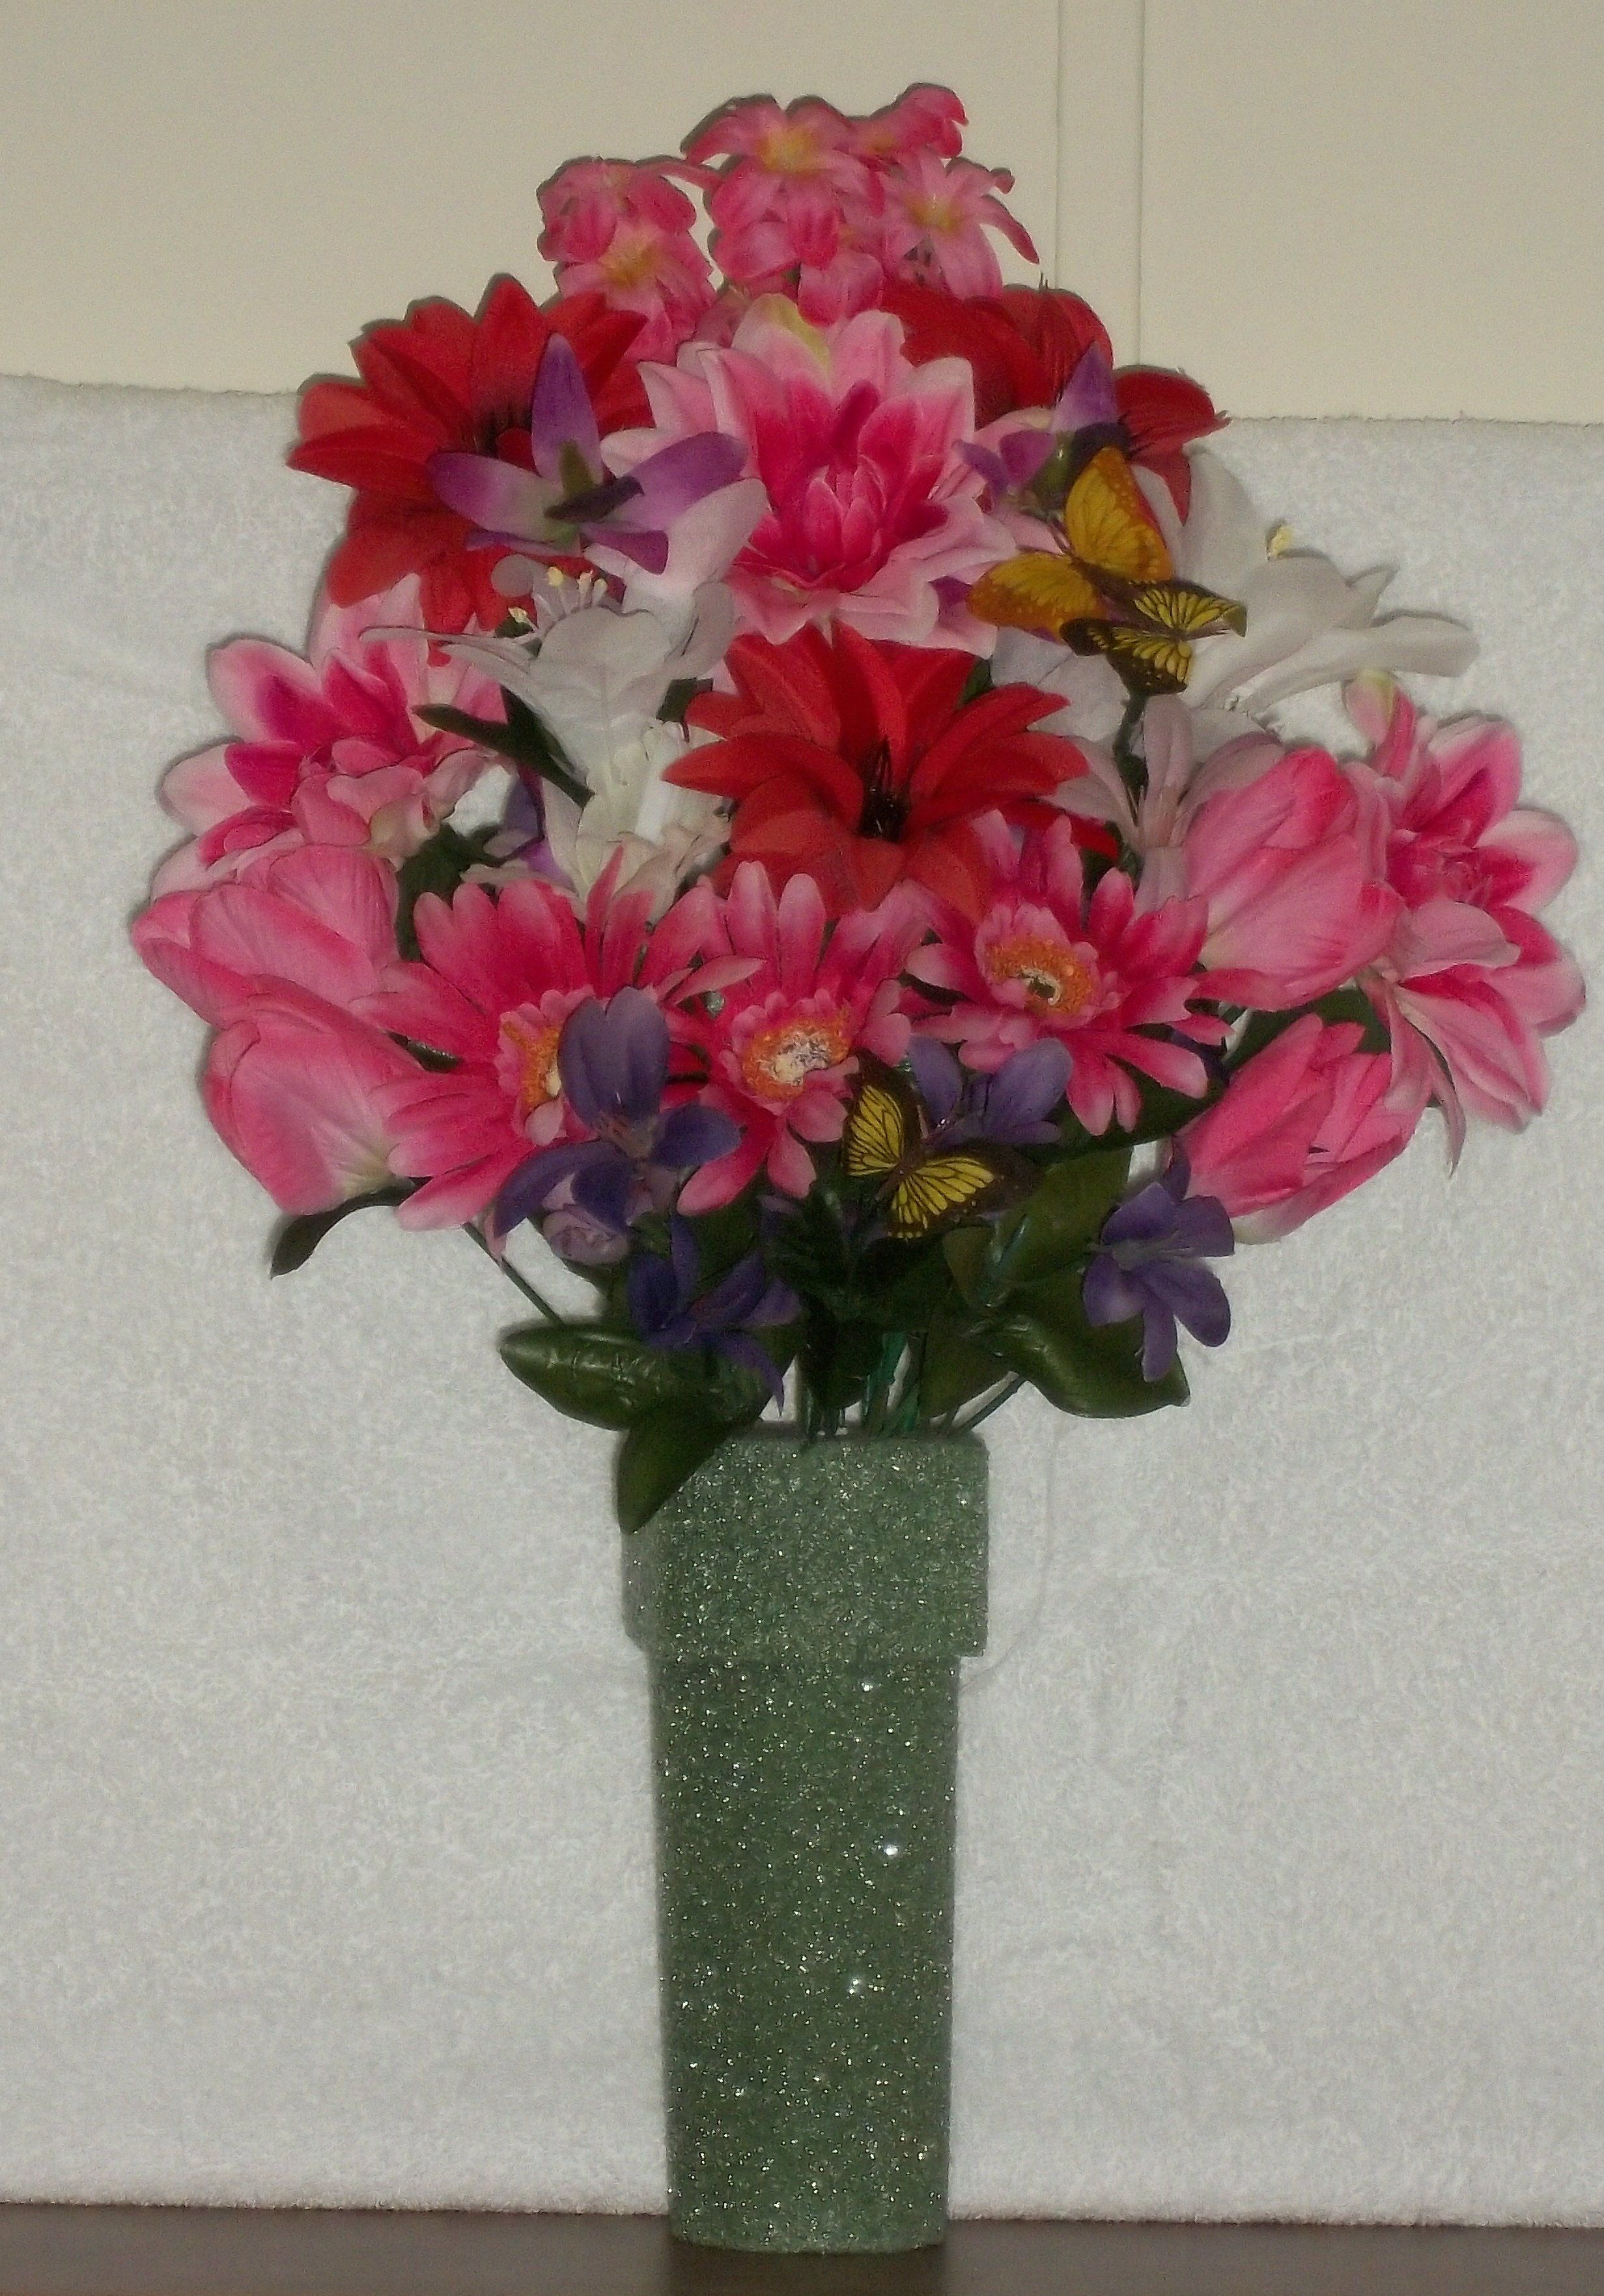 Flower Vase Decoration 2013 Floral Design For Cemetery Decoration Craft Ideas